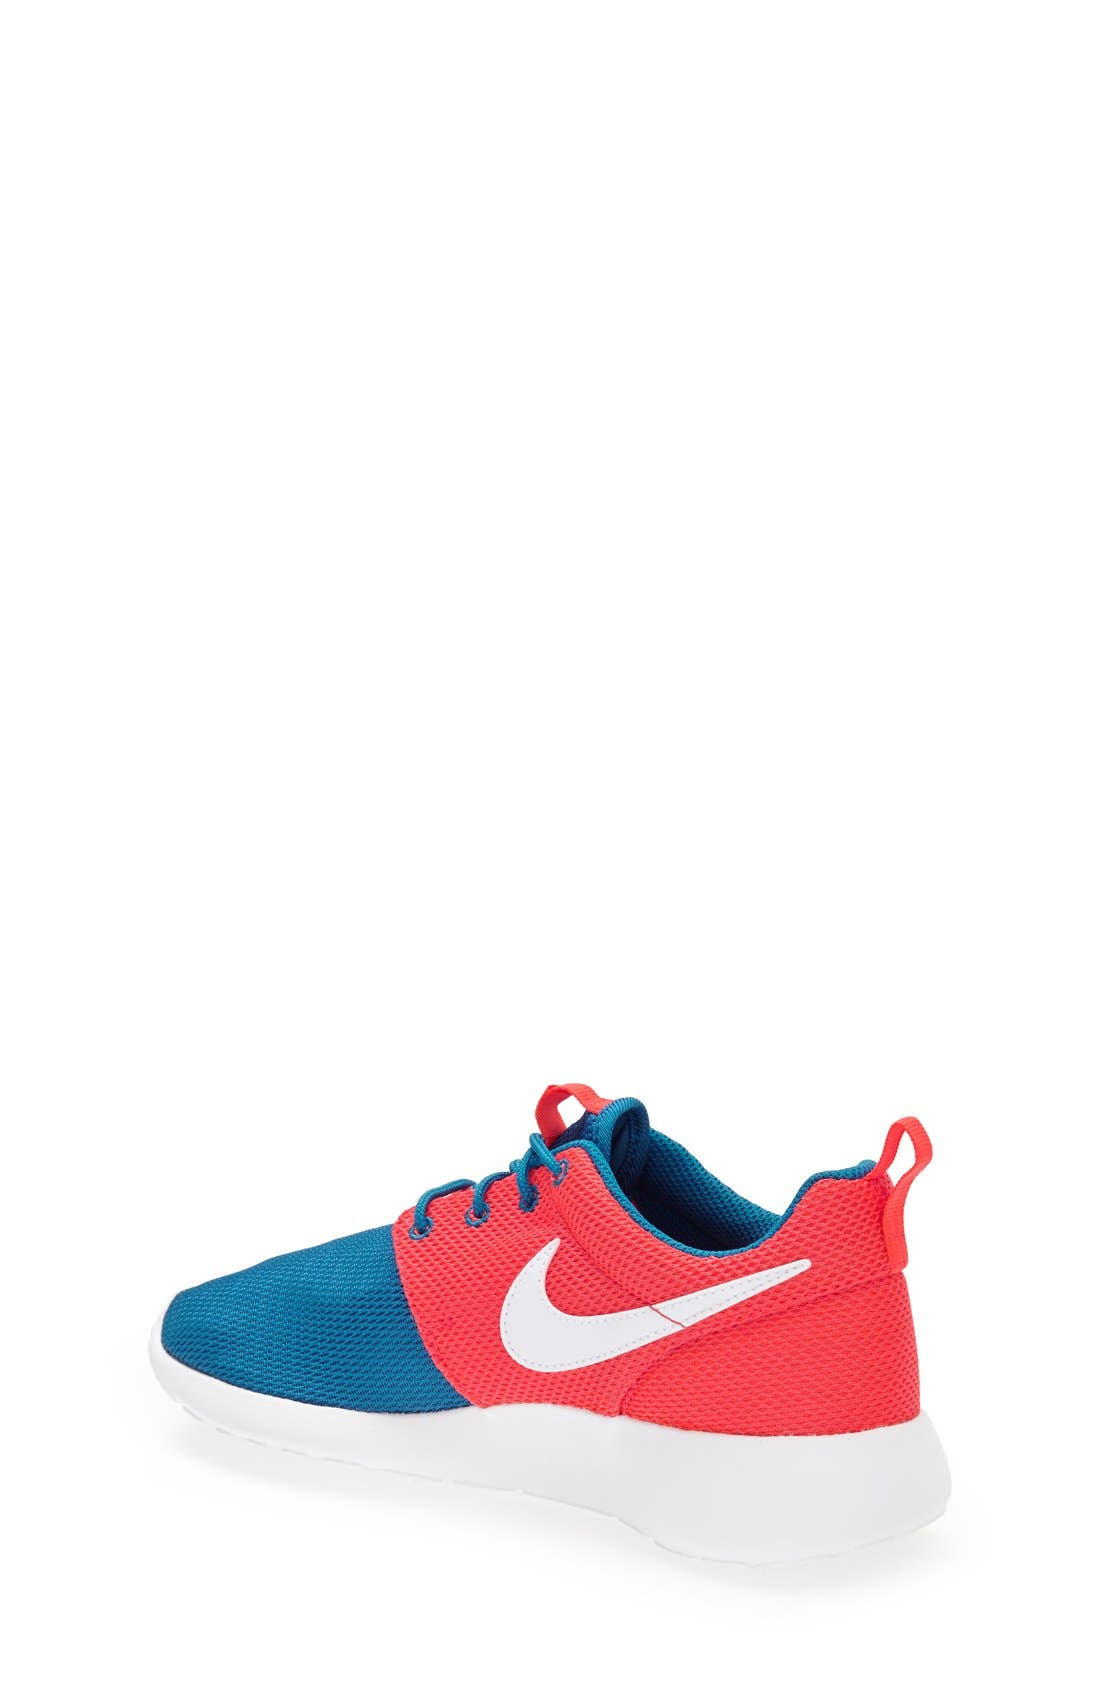 'Roshe Run' Sneaker,                             Alternate thumbnail 85, color,